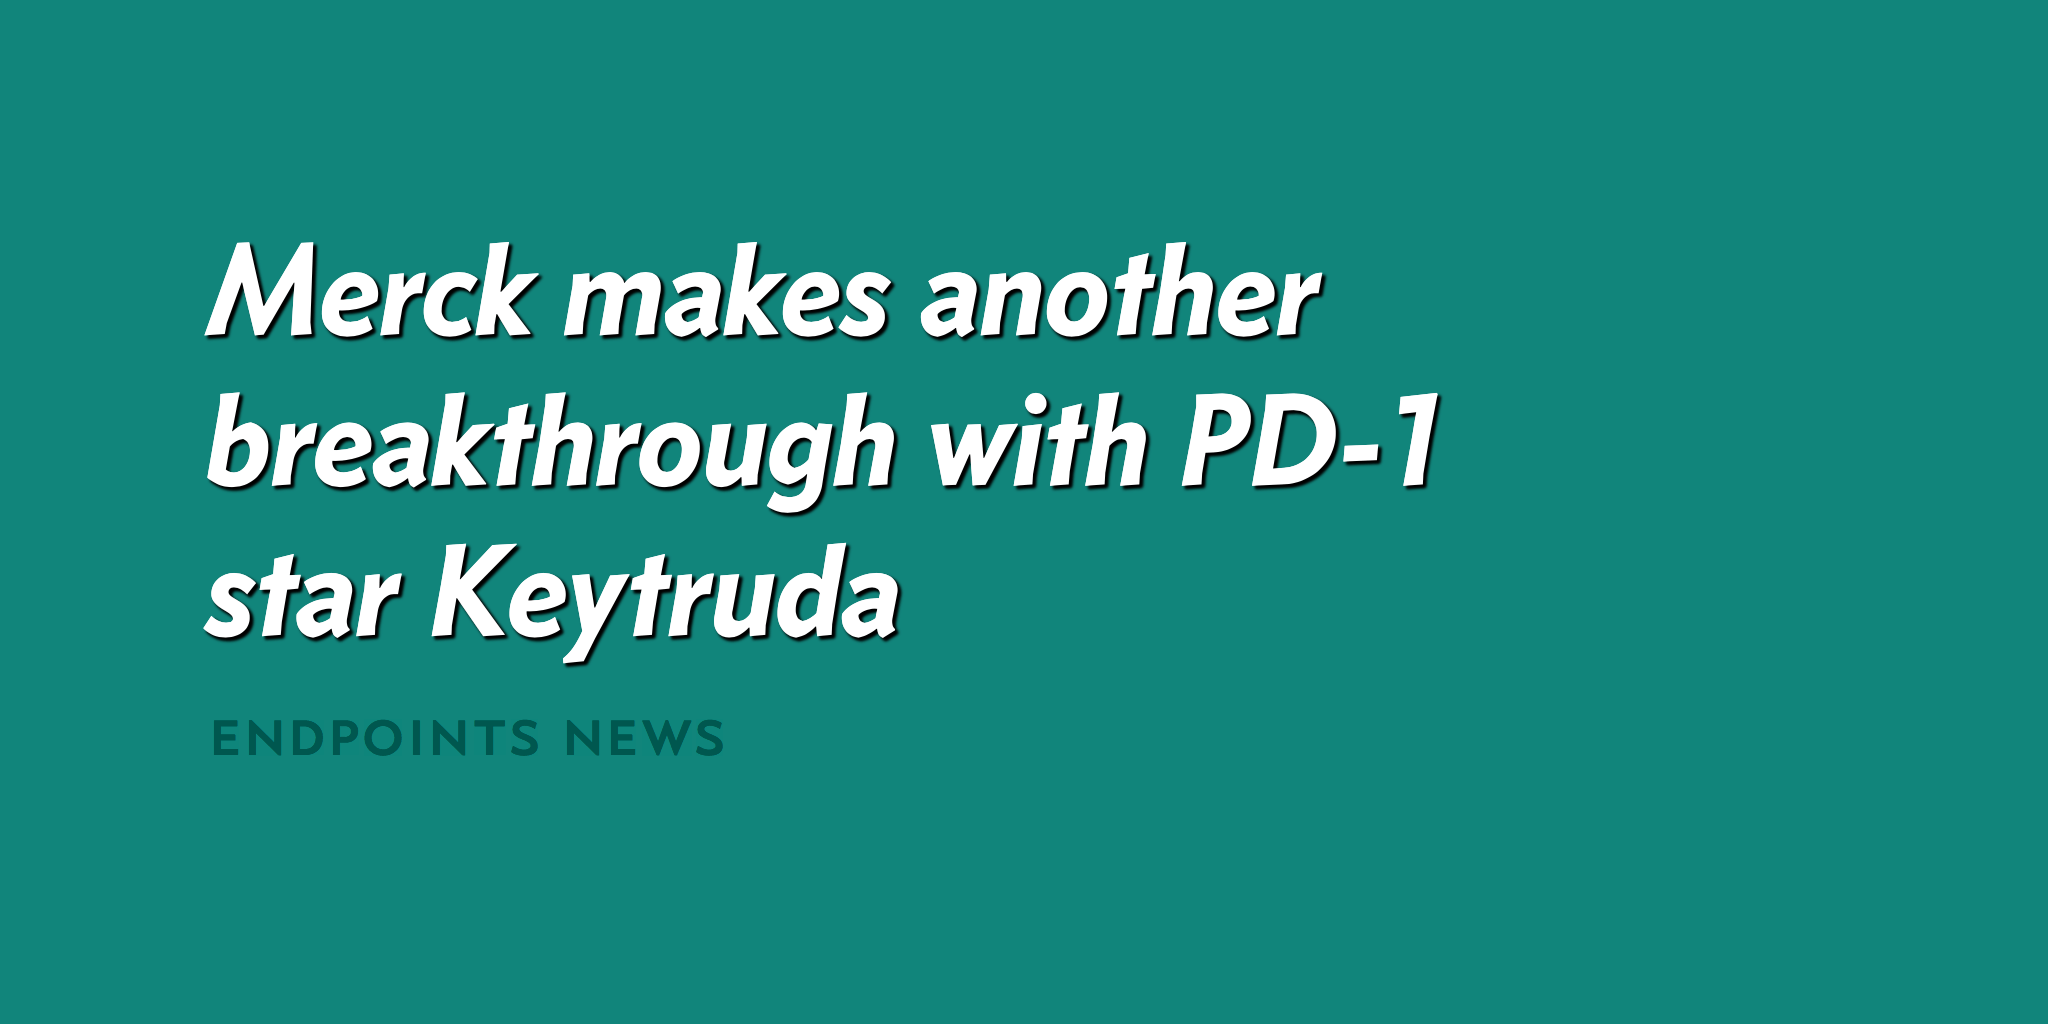 FDA Breaks New Ground with Expanded Keytruda Indication